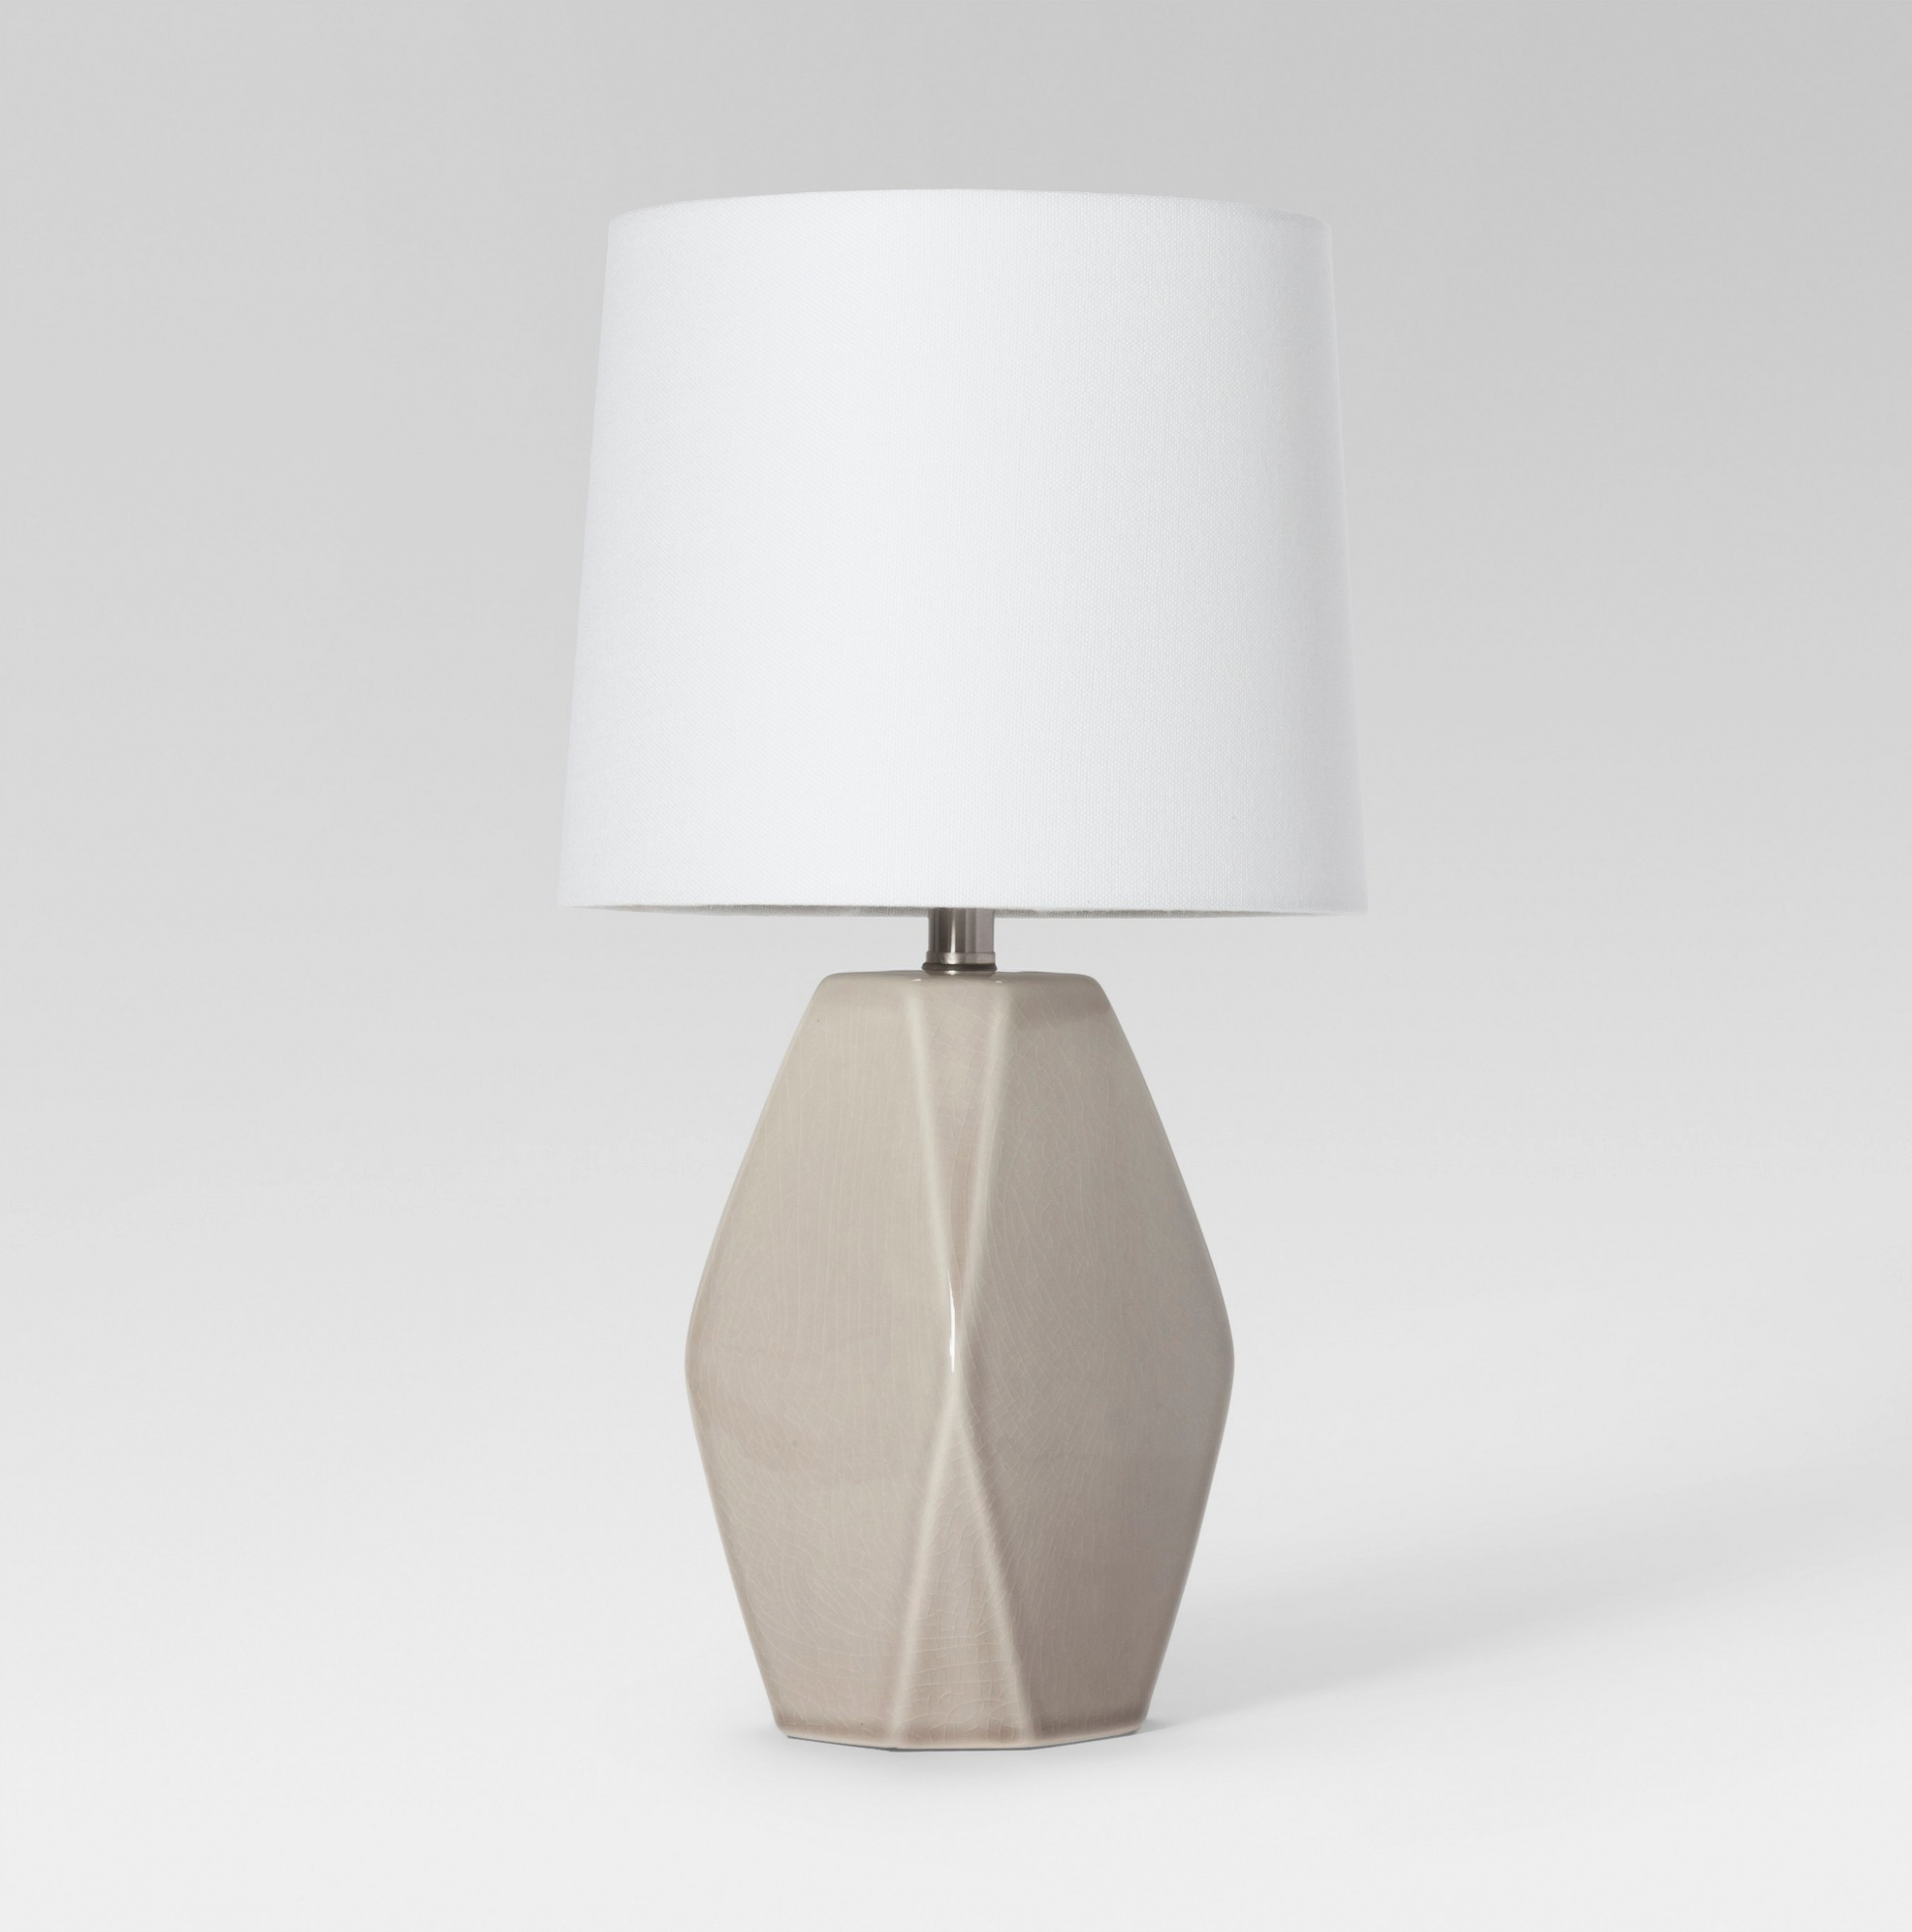 lighting upright table lamp with lovely modern ceramic facet accent pertaining glass lamps fabulous your home idea white gloss side safavieh coffee homebase outdoor furniture tall